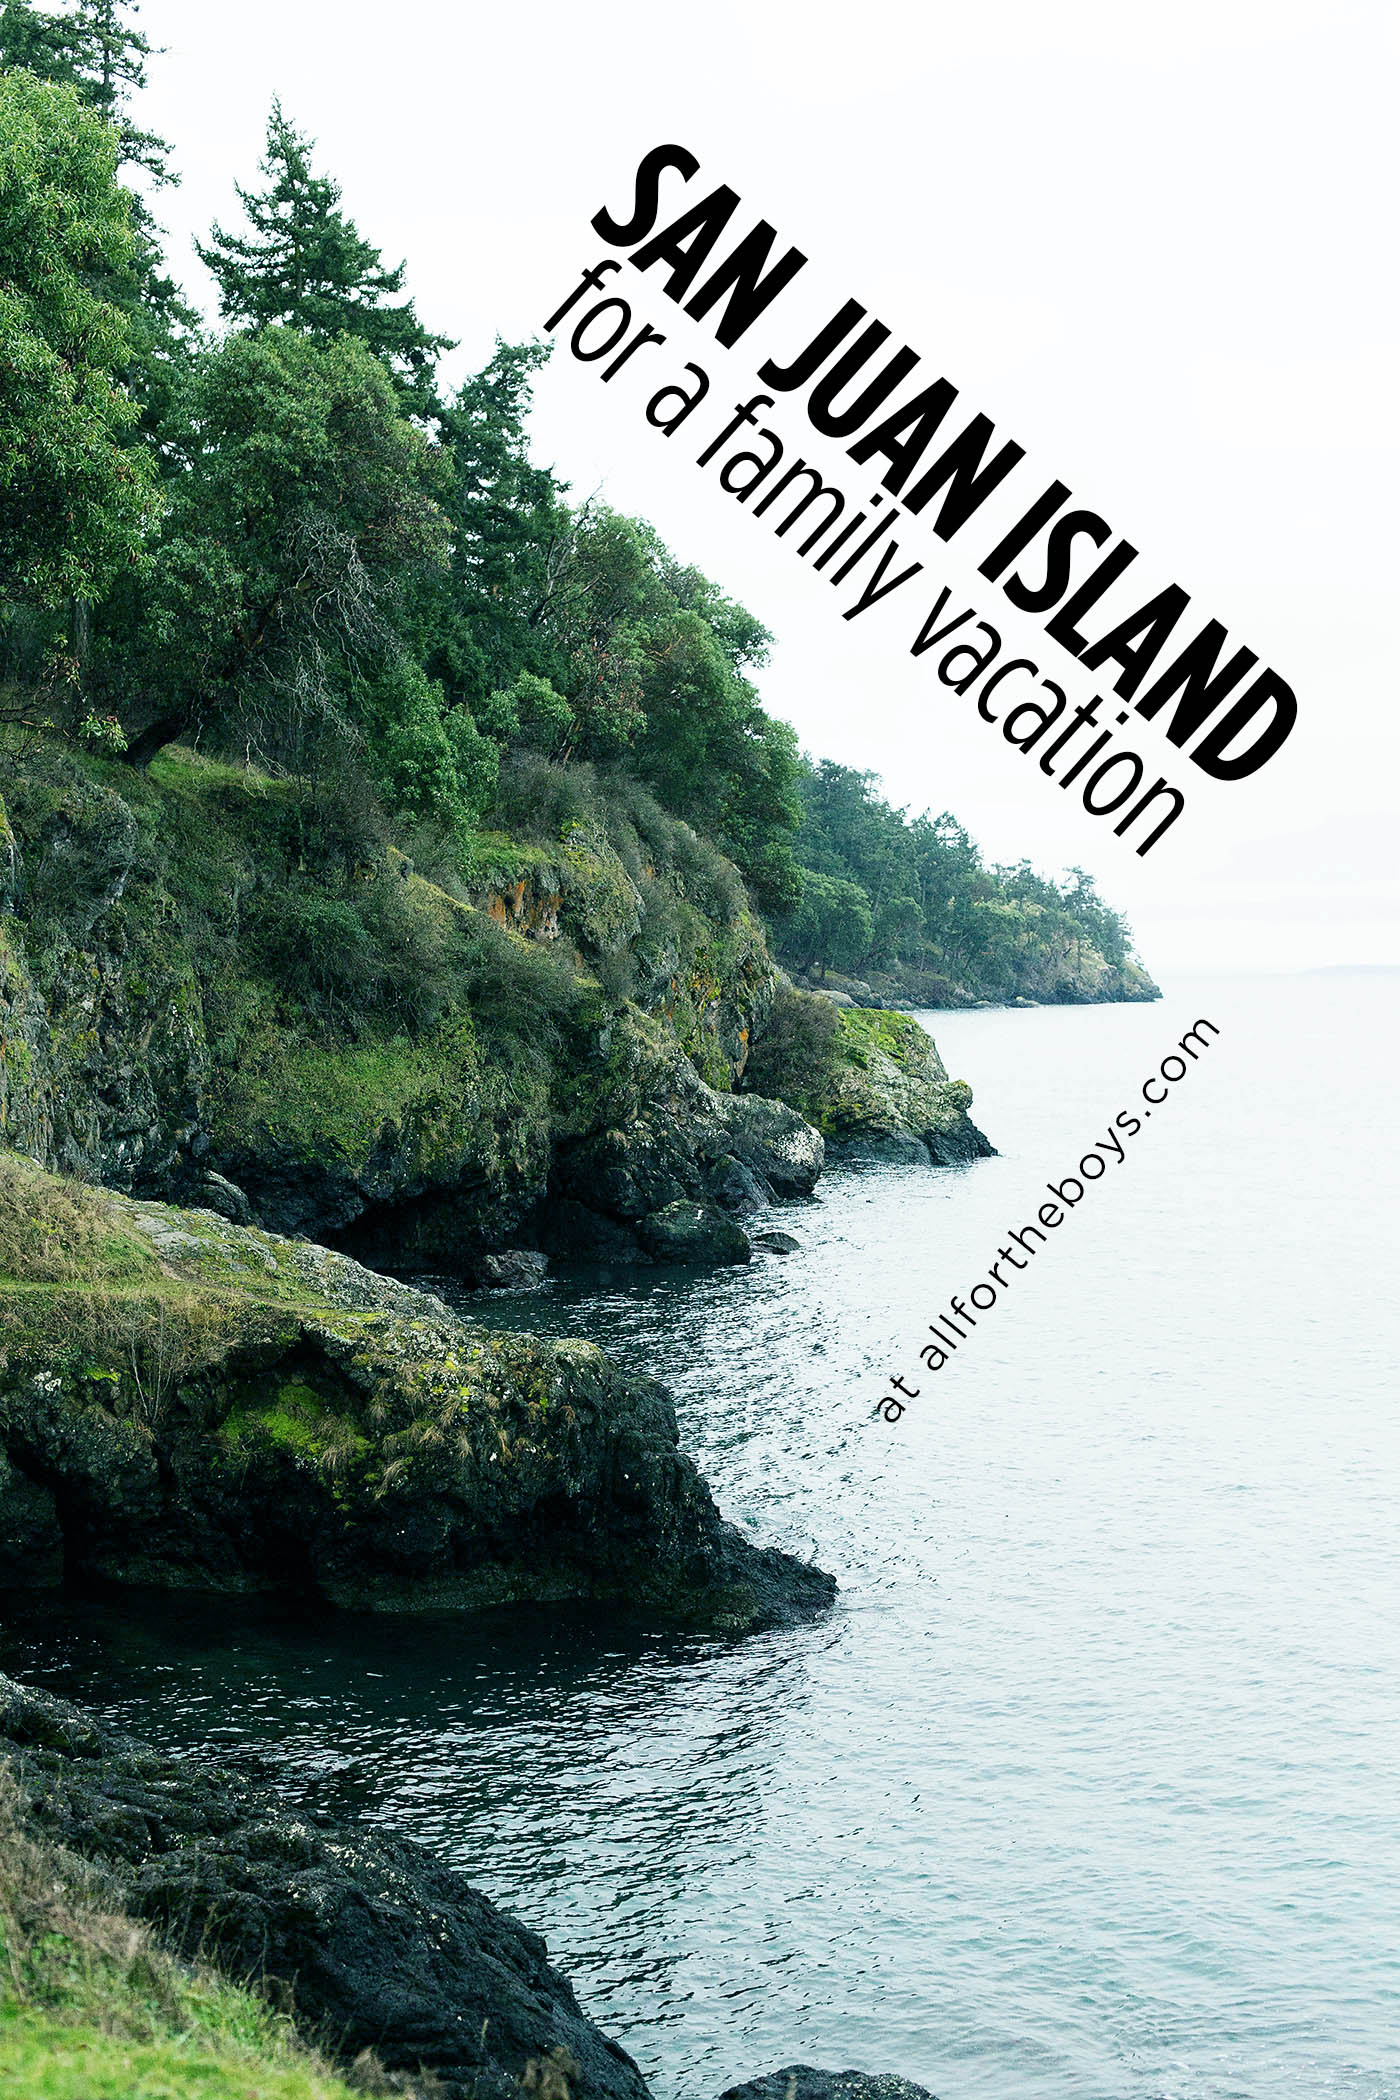 San Juan Island (just outside of Seattle, Washington) for a family vacation. What to do, where to stay and tips from allfortheboys.com